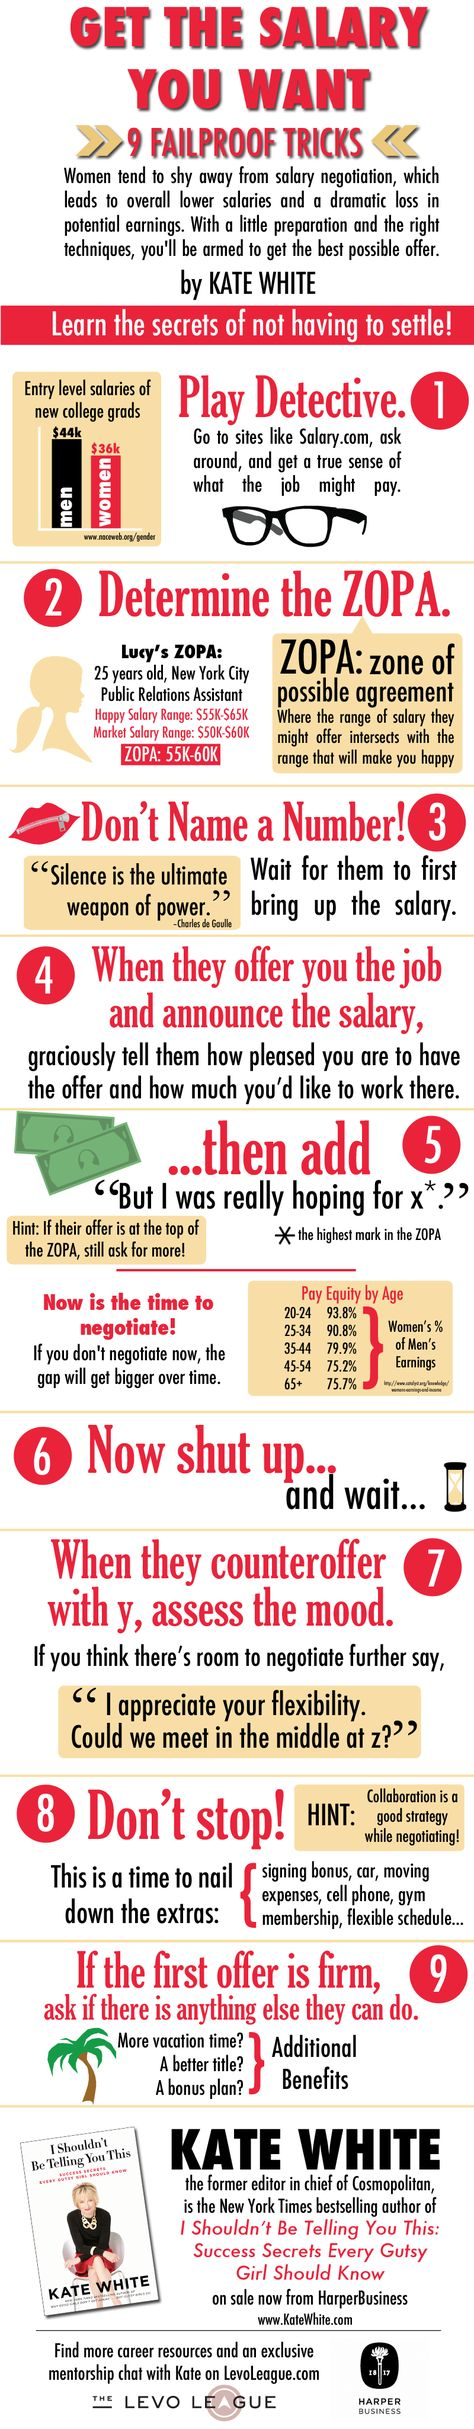 Get the Salary You Want | 9 Failproof Tricks